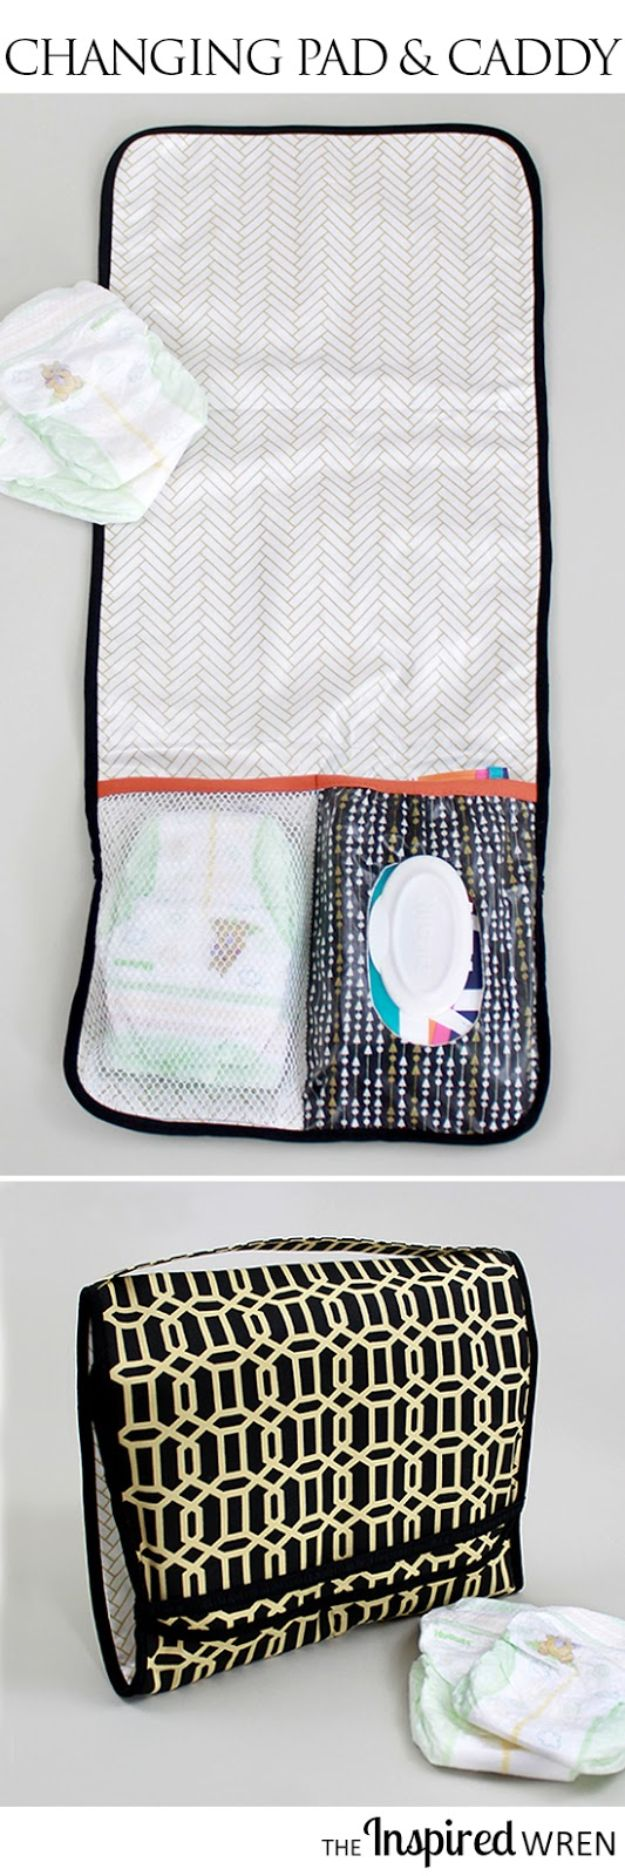 Super creative things to sew for baby diaper caddy